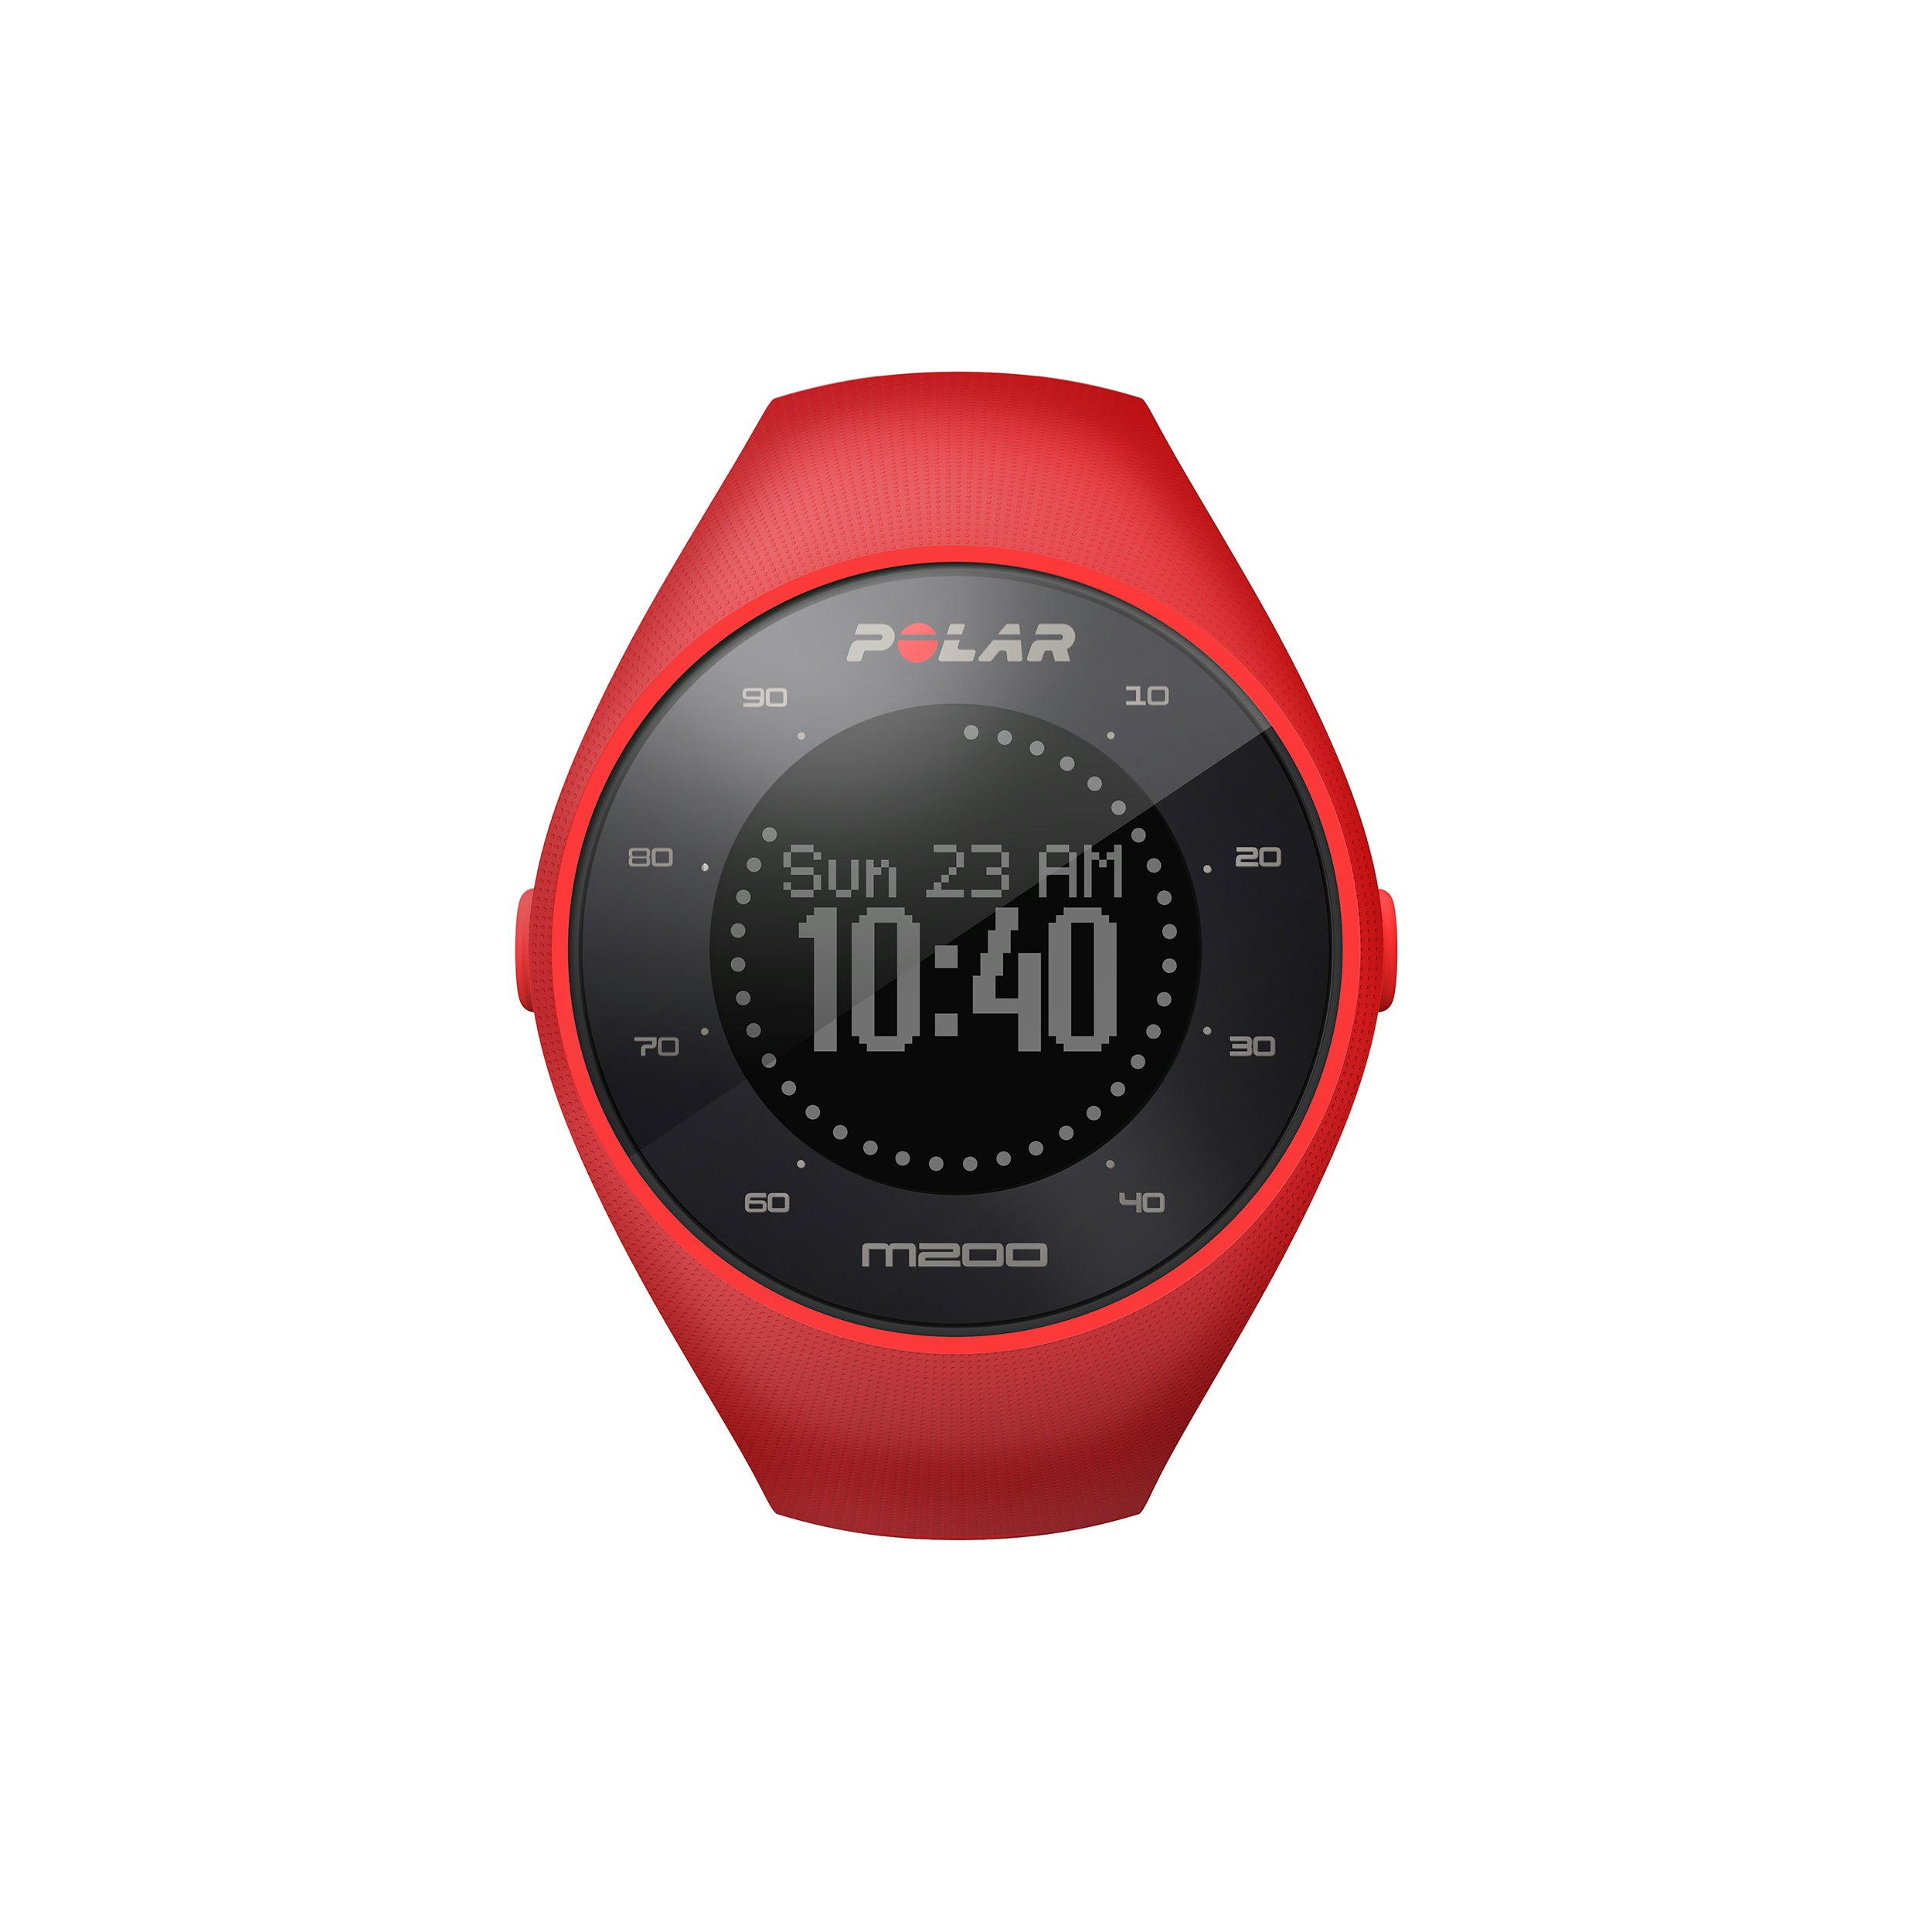 Polar M200 GPS Running Watch with Wrist-Based Heart Rate, Red, Medium/Large by Polar